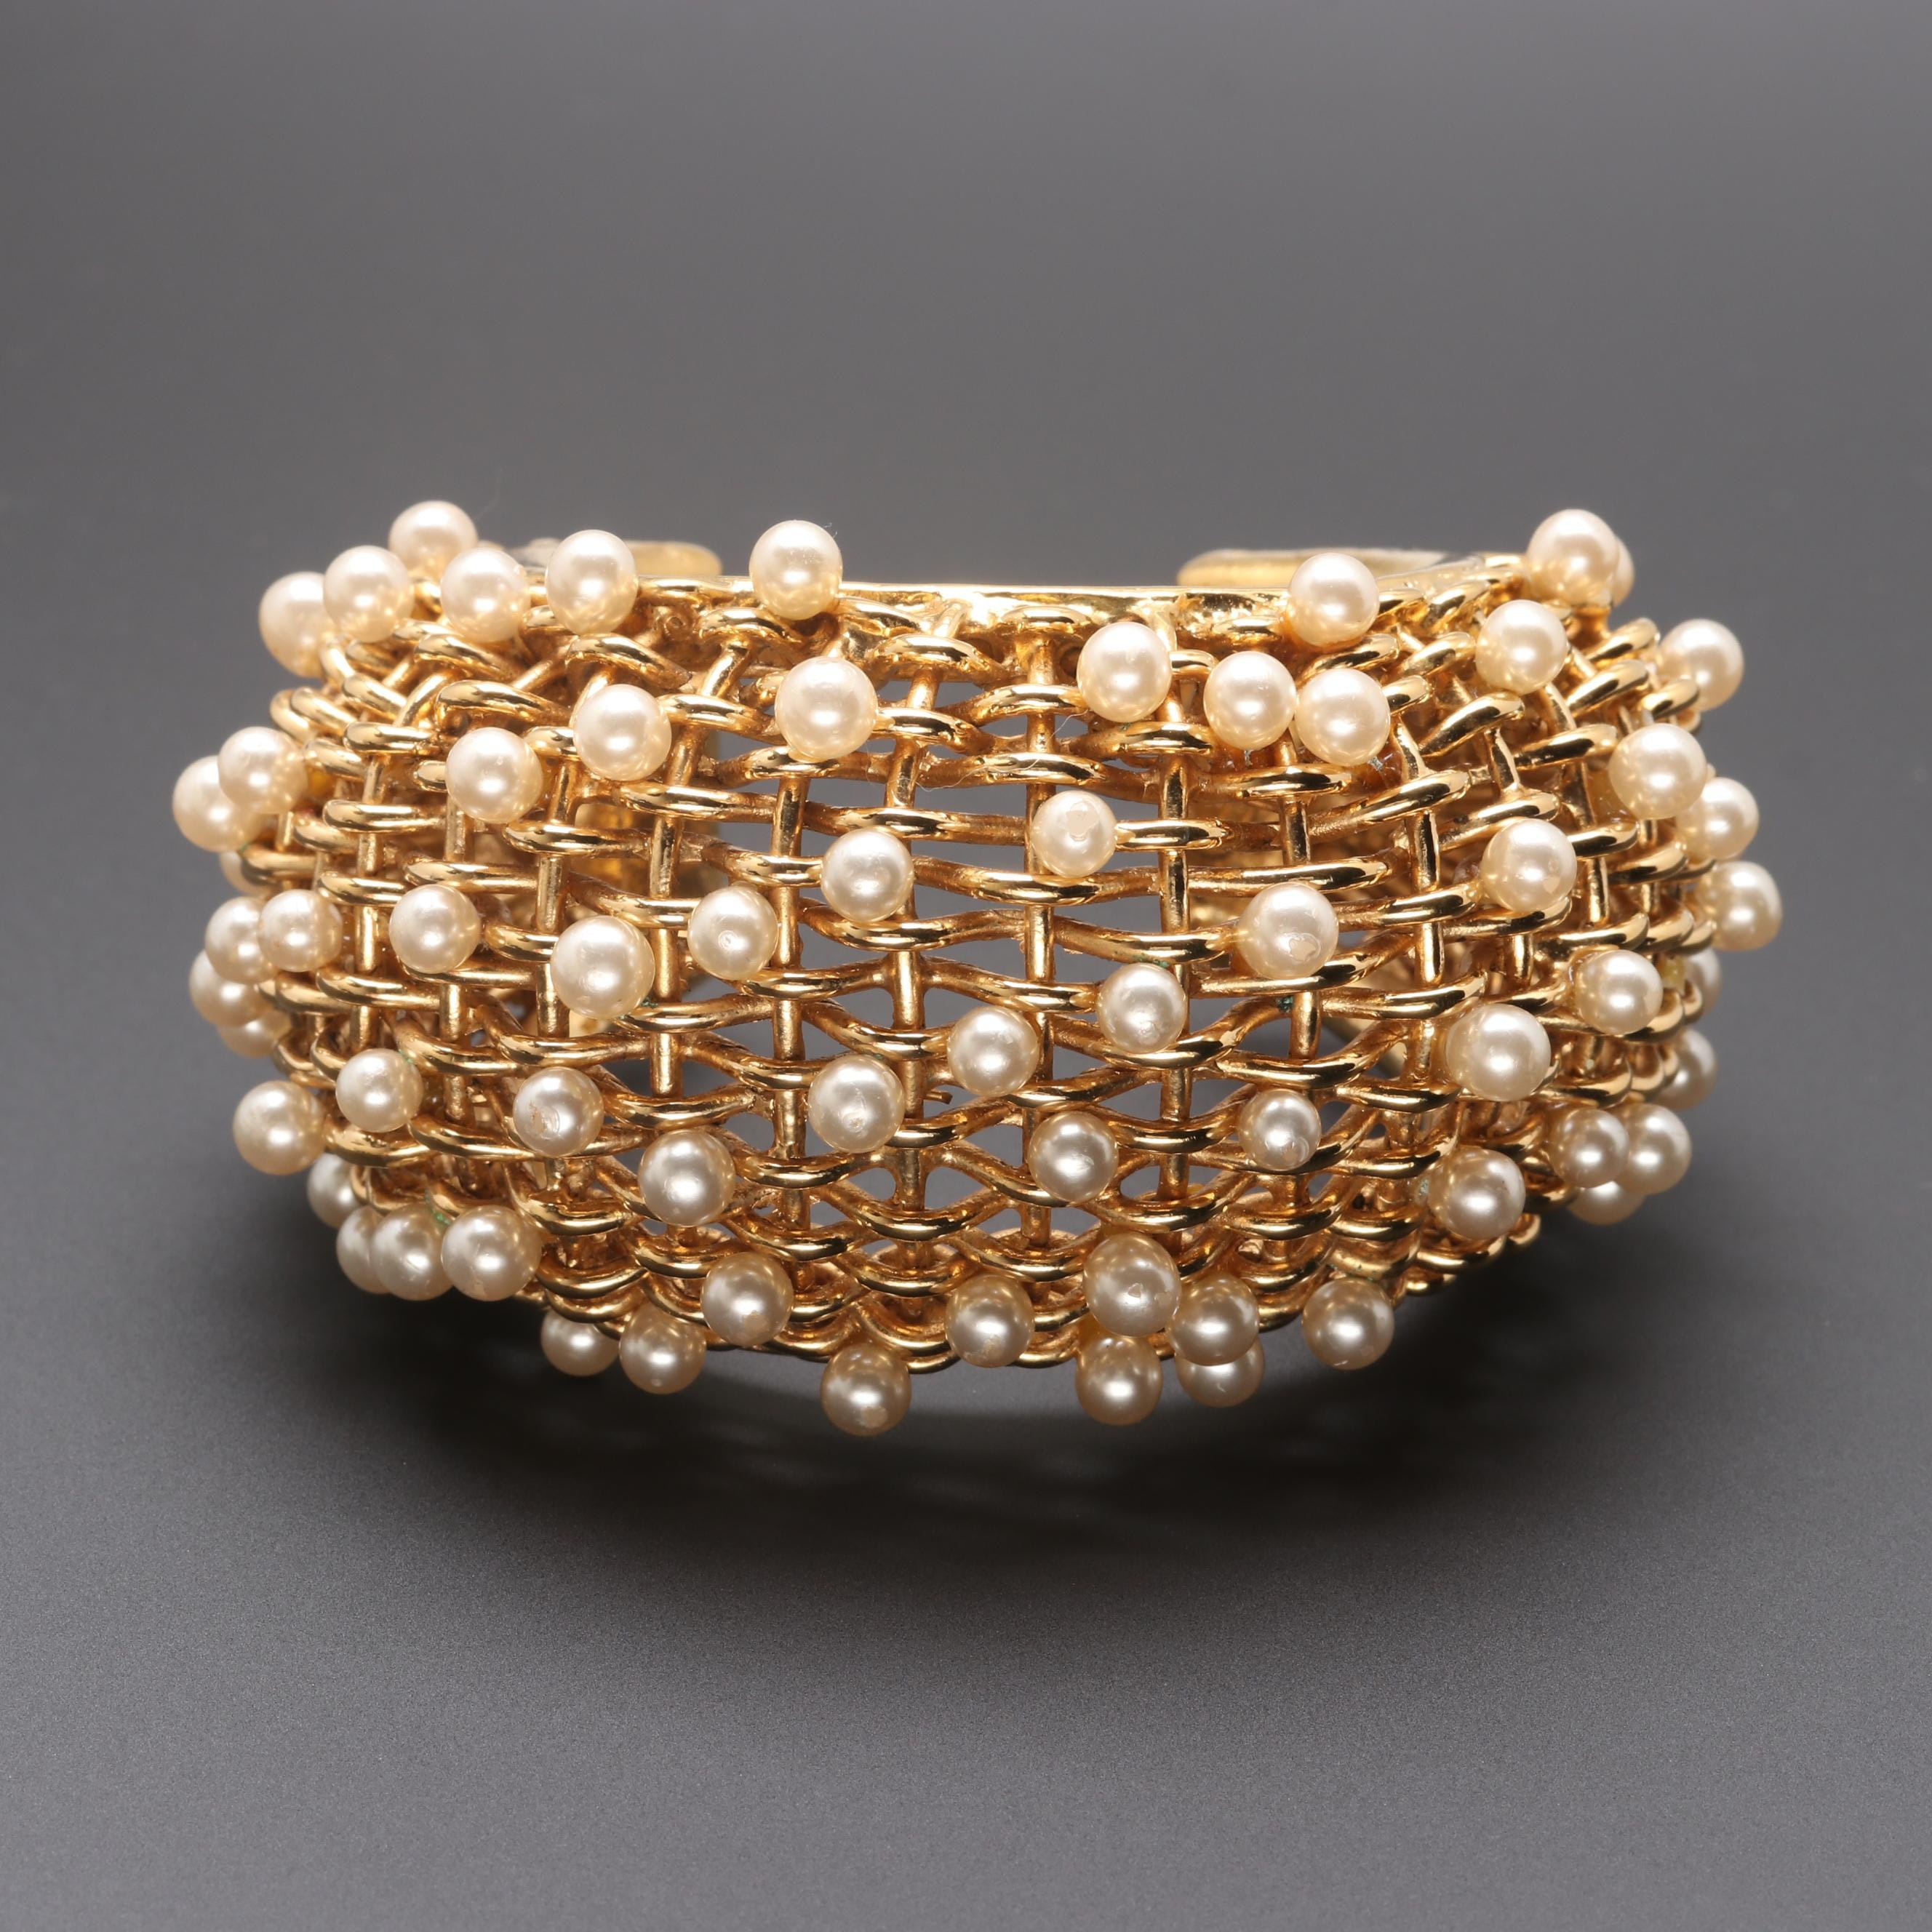 "Circa 1980s Chanel Imitation Cultured Pearl ""Season 23 Chanel Cuff"" Bracelet"